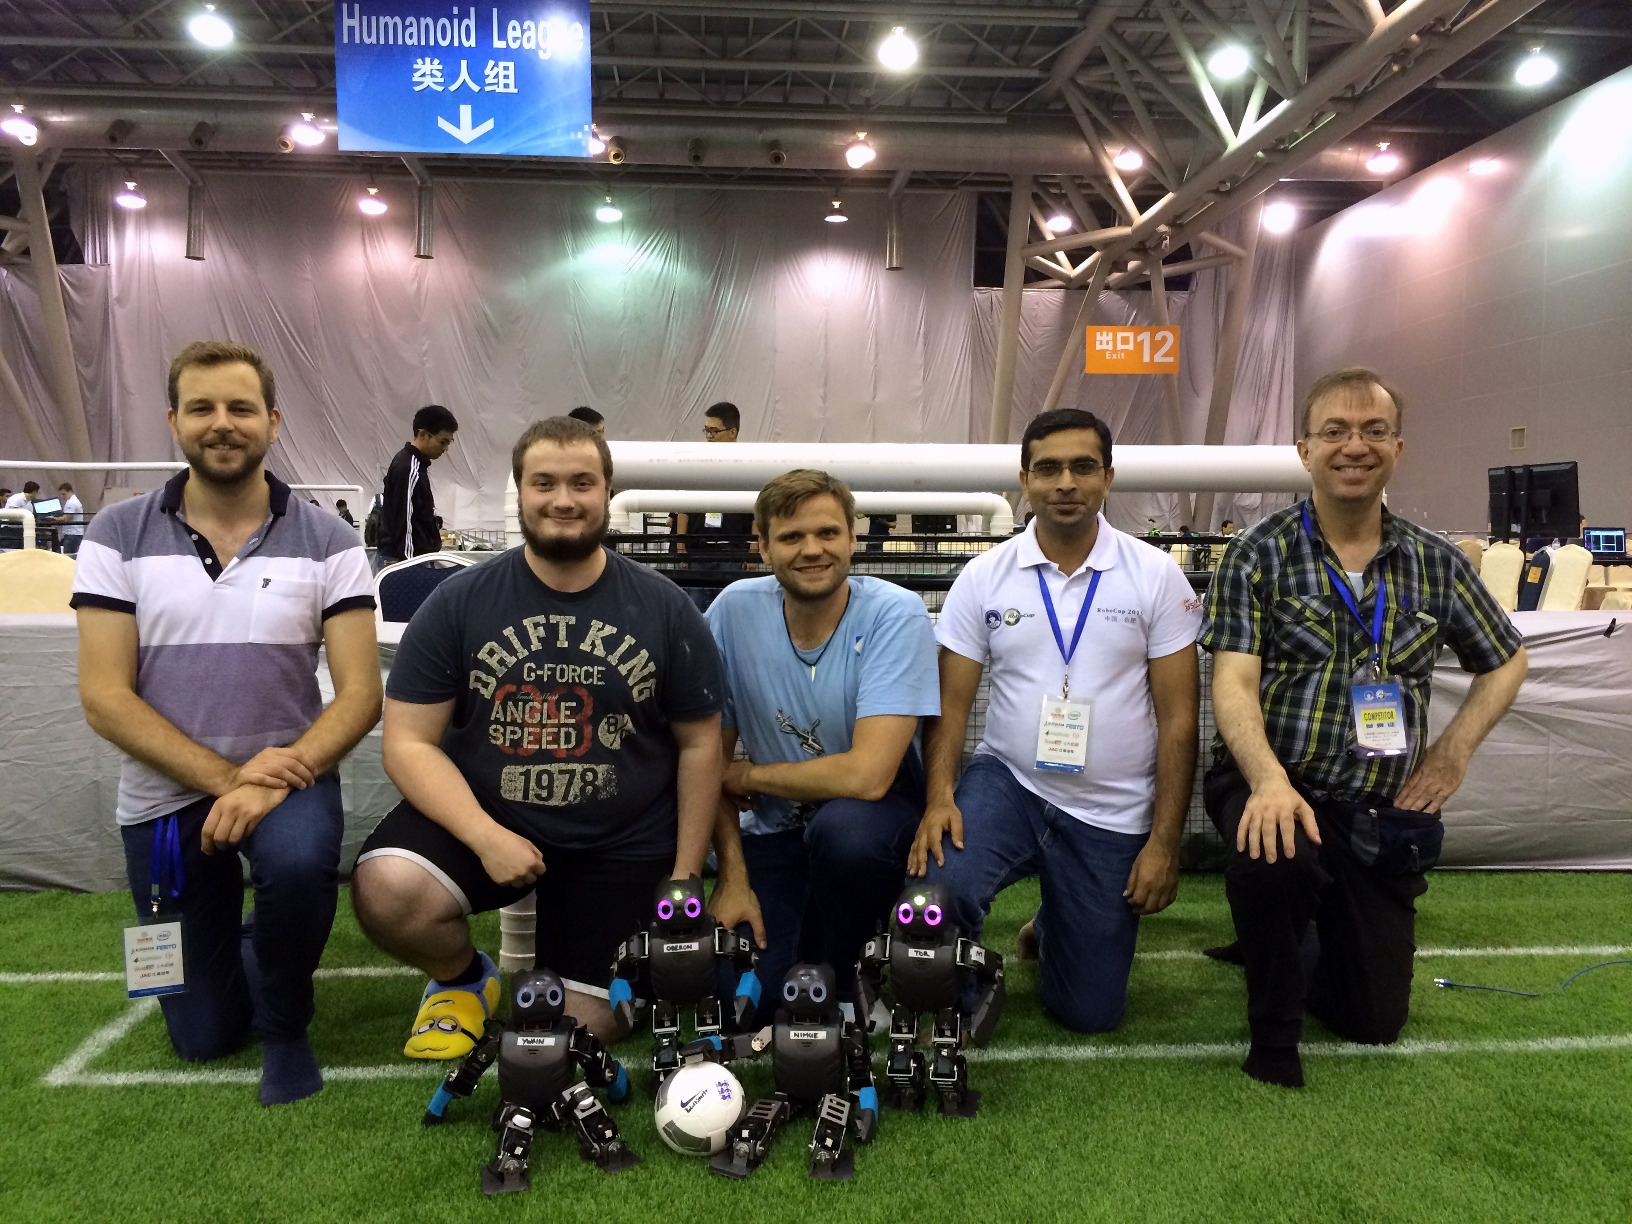 BoldHearts team at the RoboCup 2015 in China / Hefei